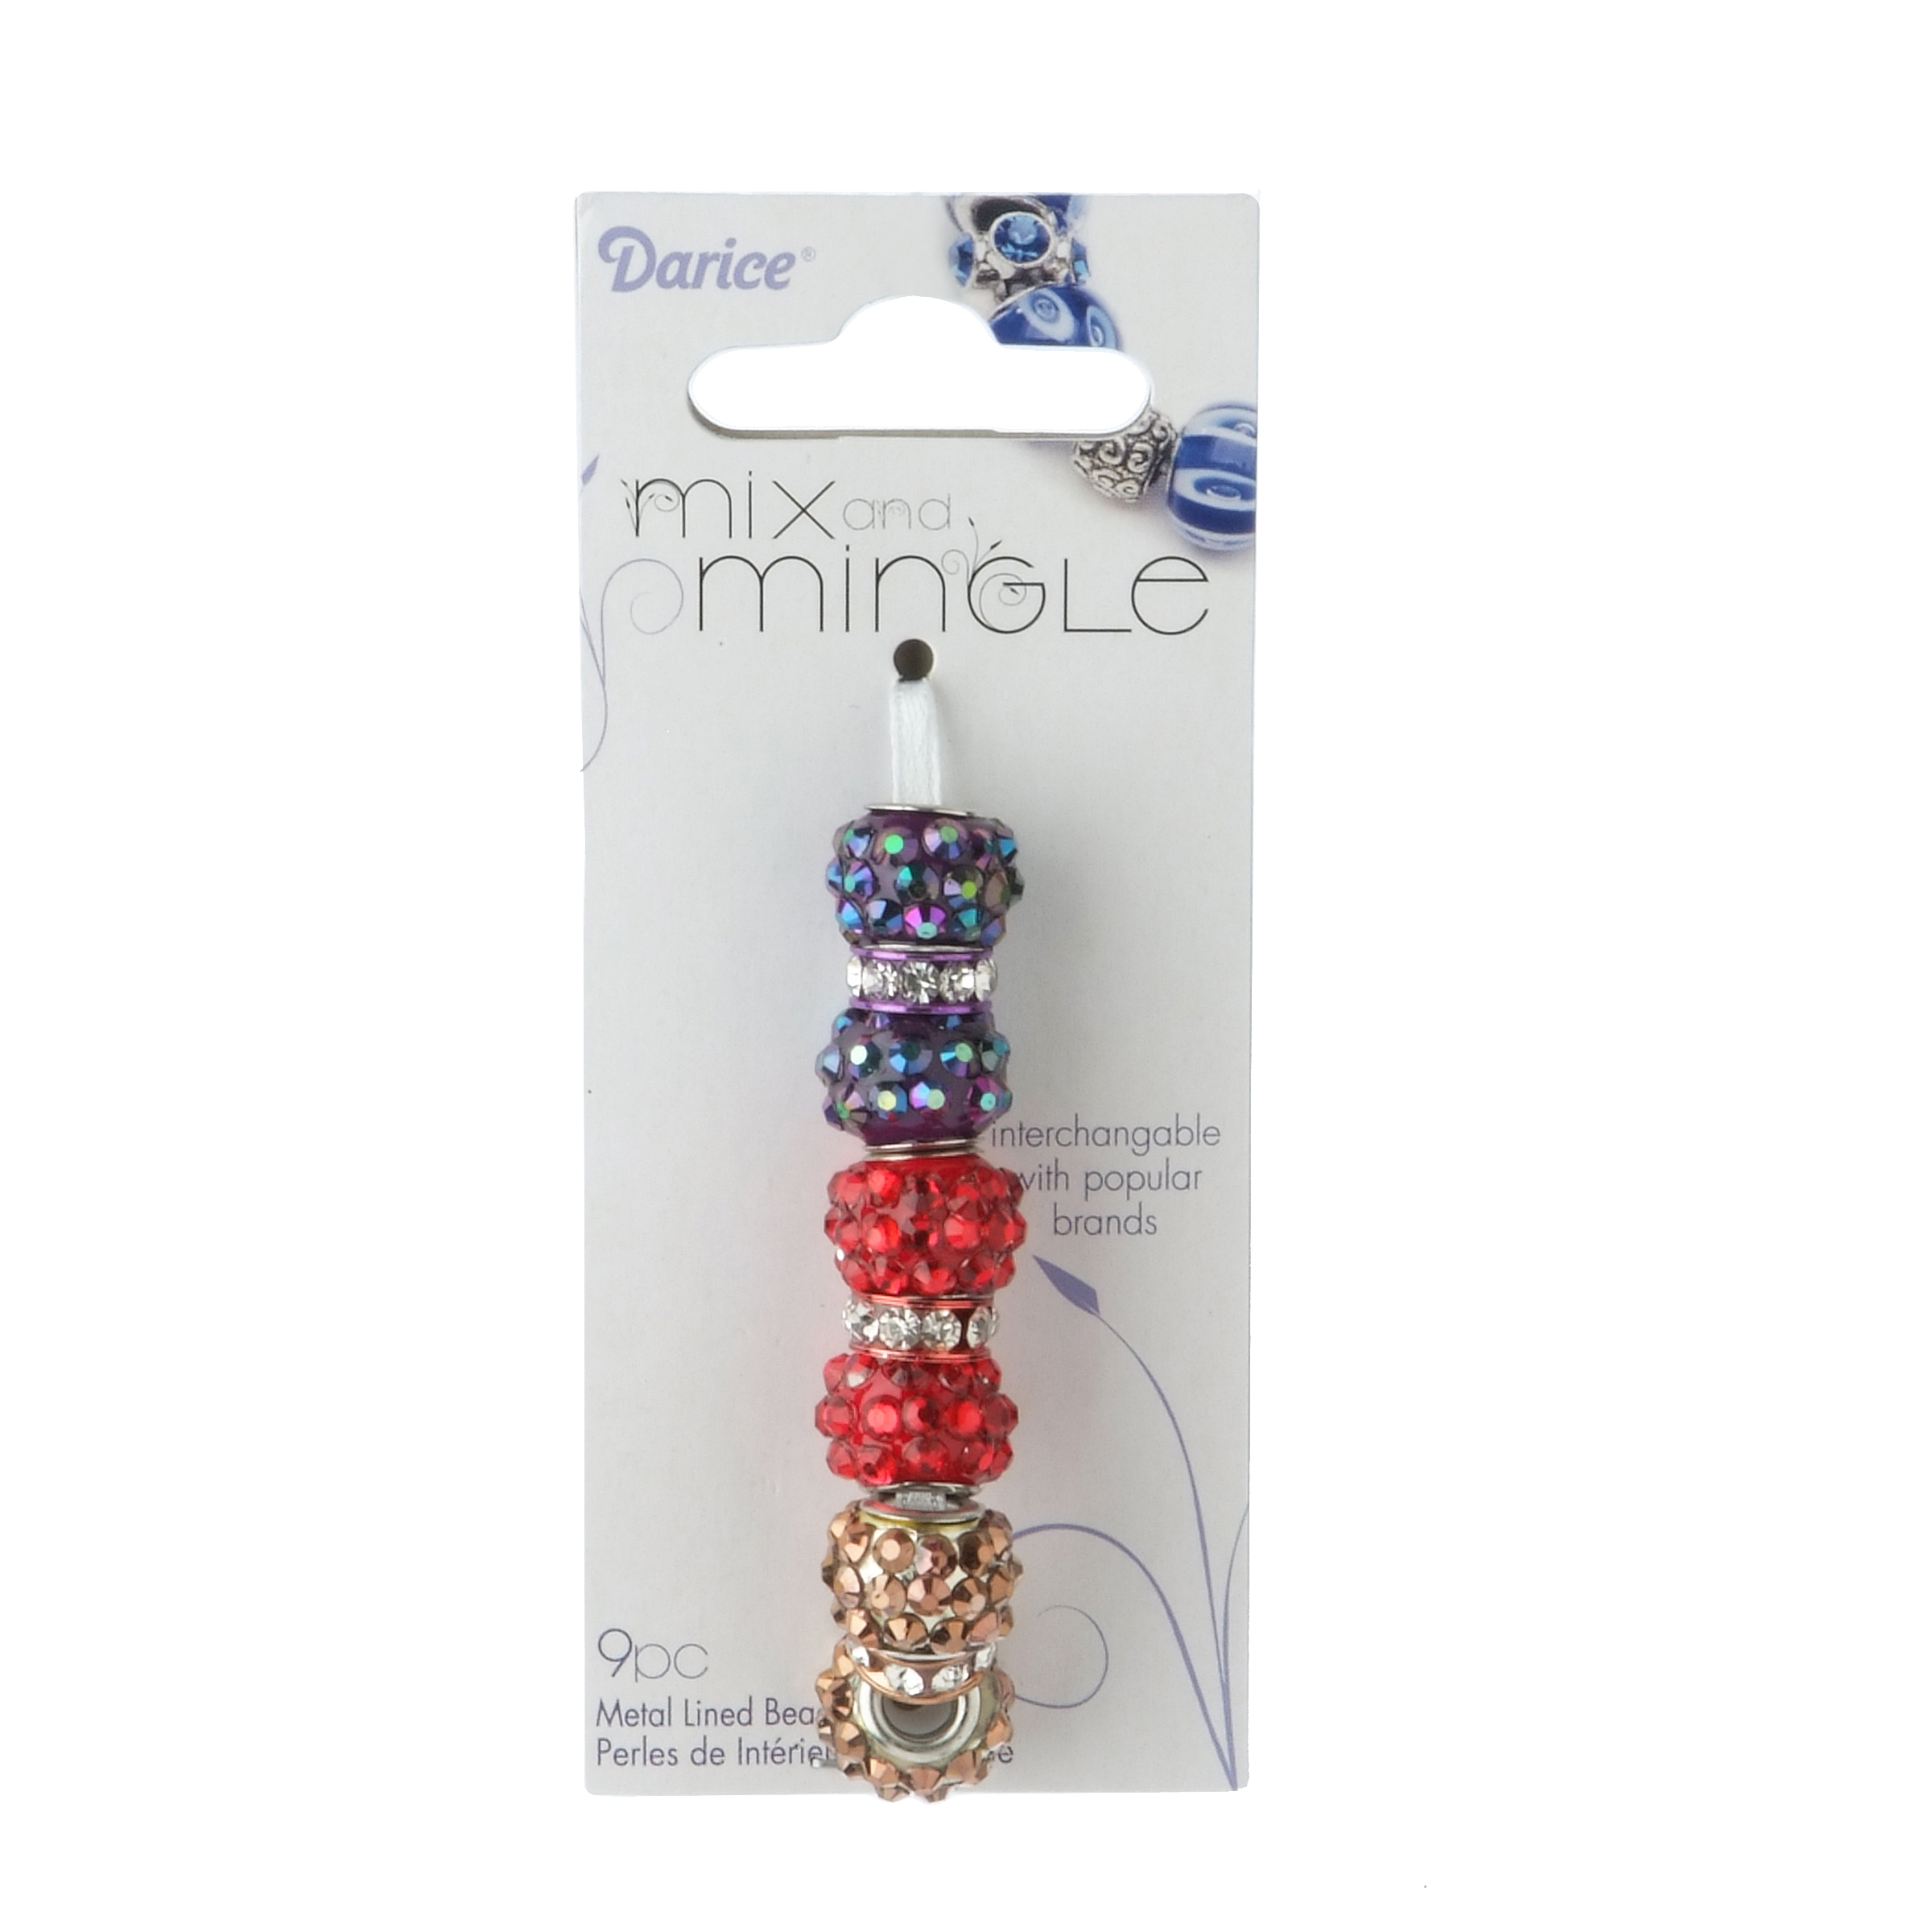 Mix and Mingle Glitter Ball Red, Purple, Brown Beads w/Rhines. Spacers